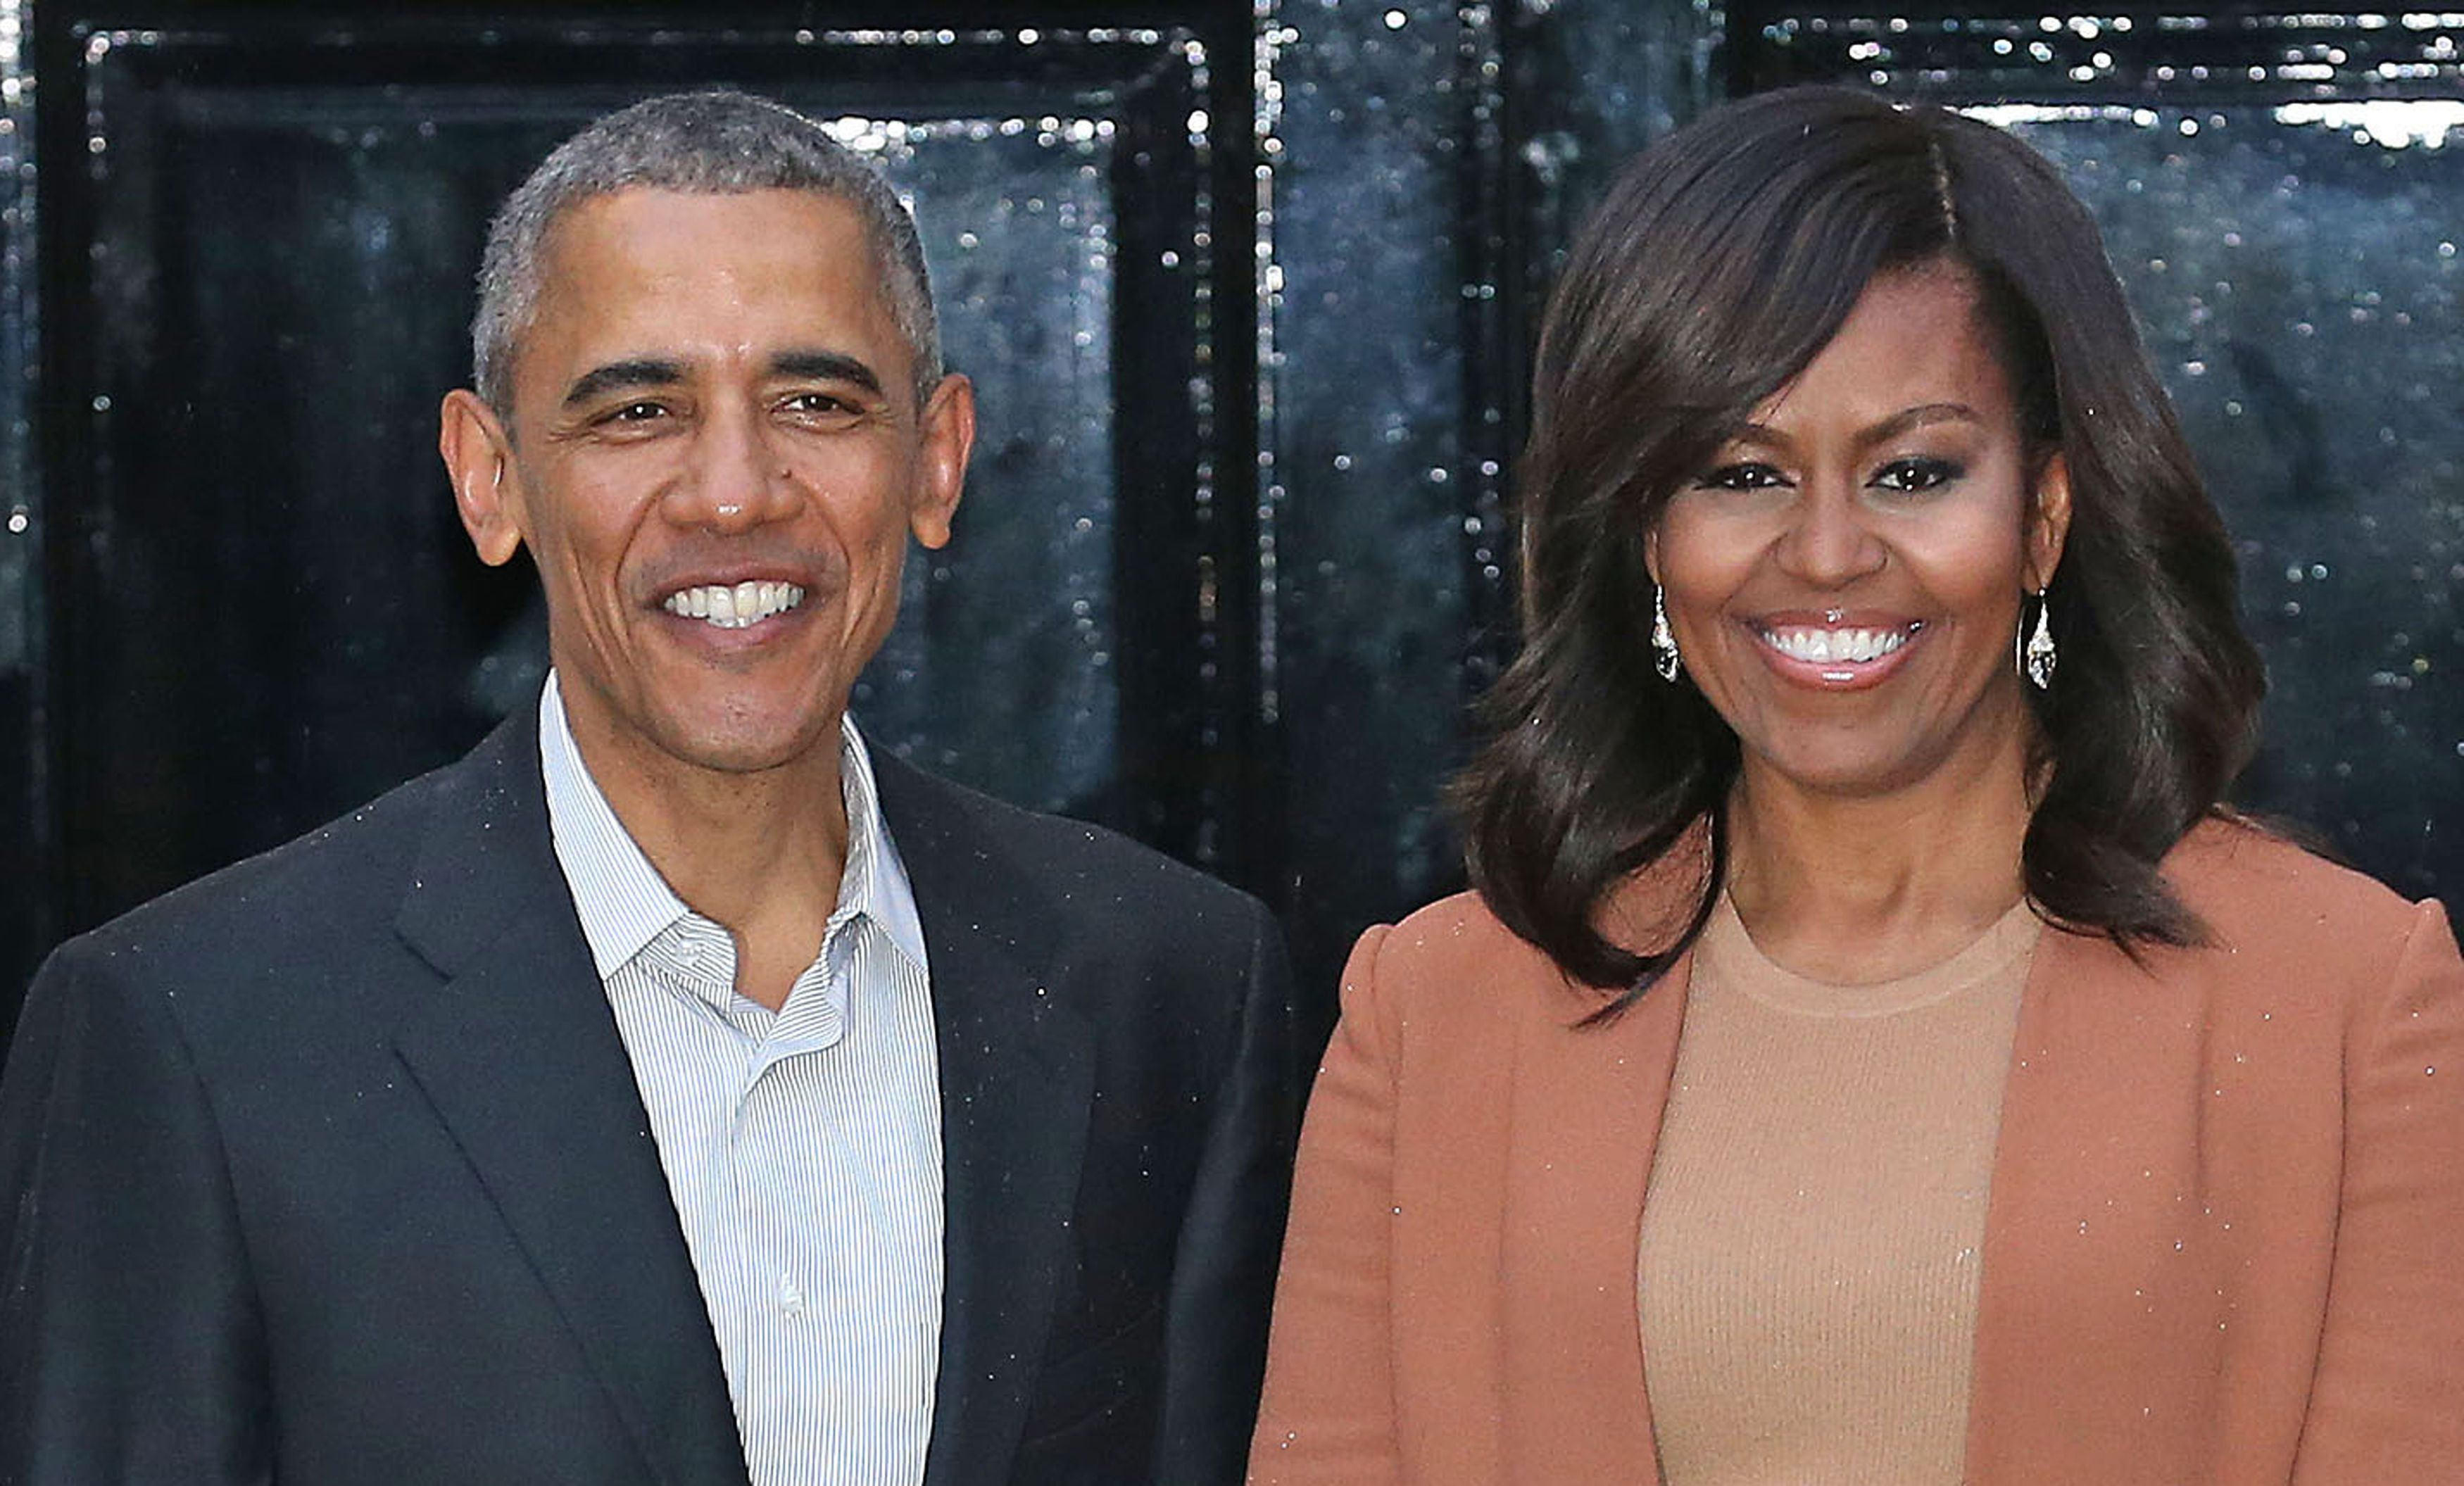 Netflix Confirms Production Deal With Barack And Michelle